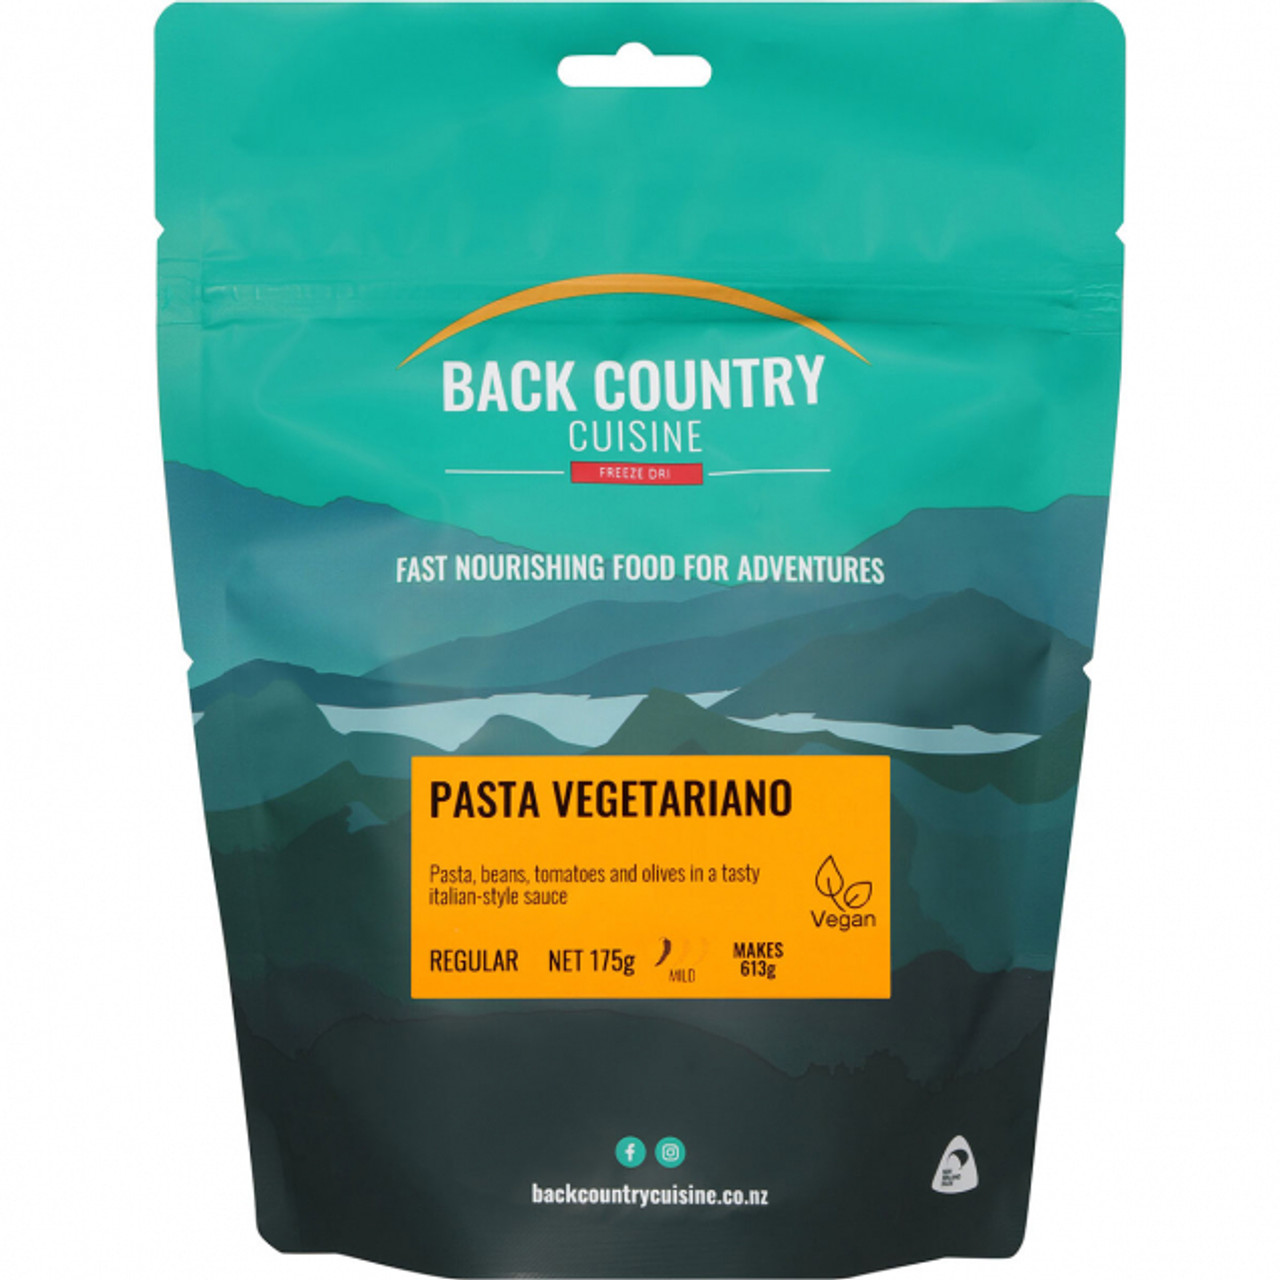 Back Country Cuisine: Pasta Vegetariano Online at Mountain Mail Order South Africa